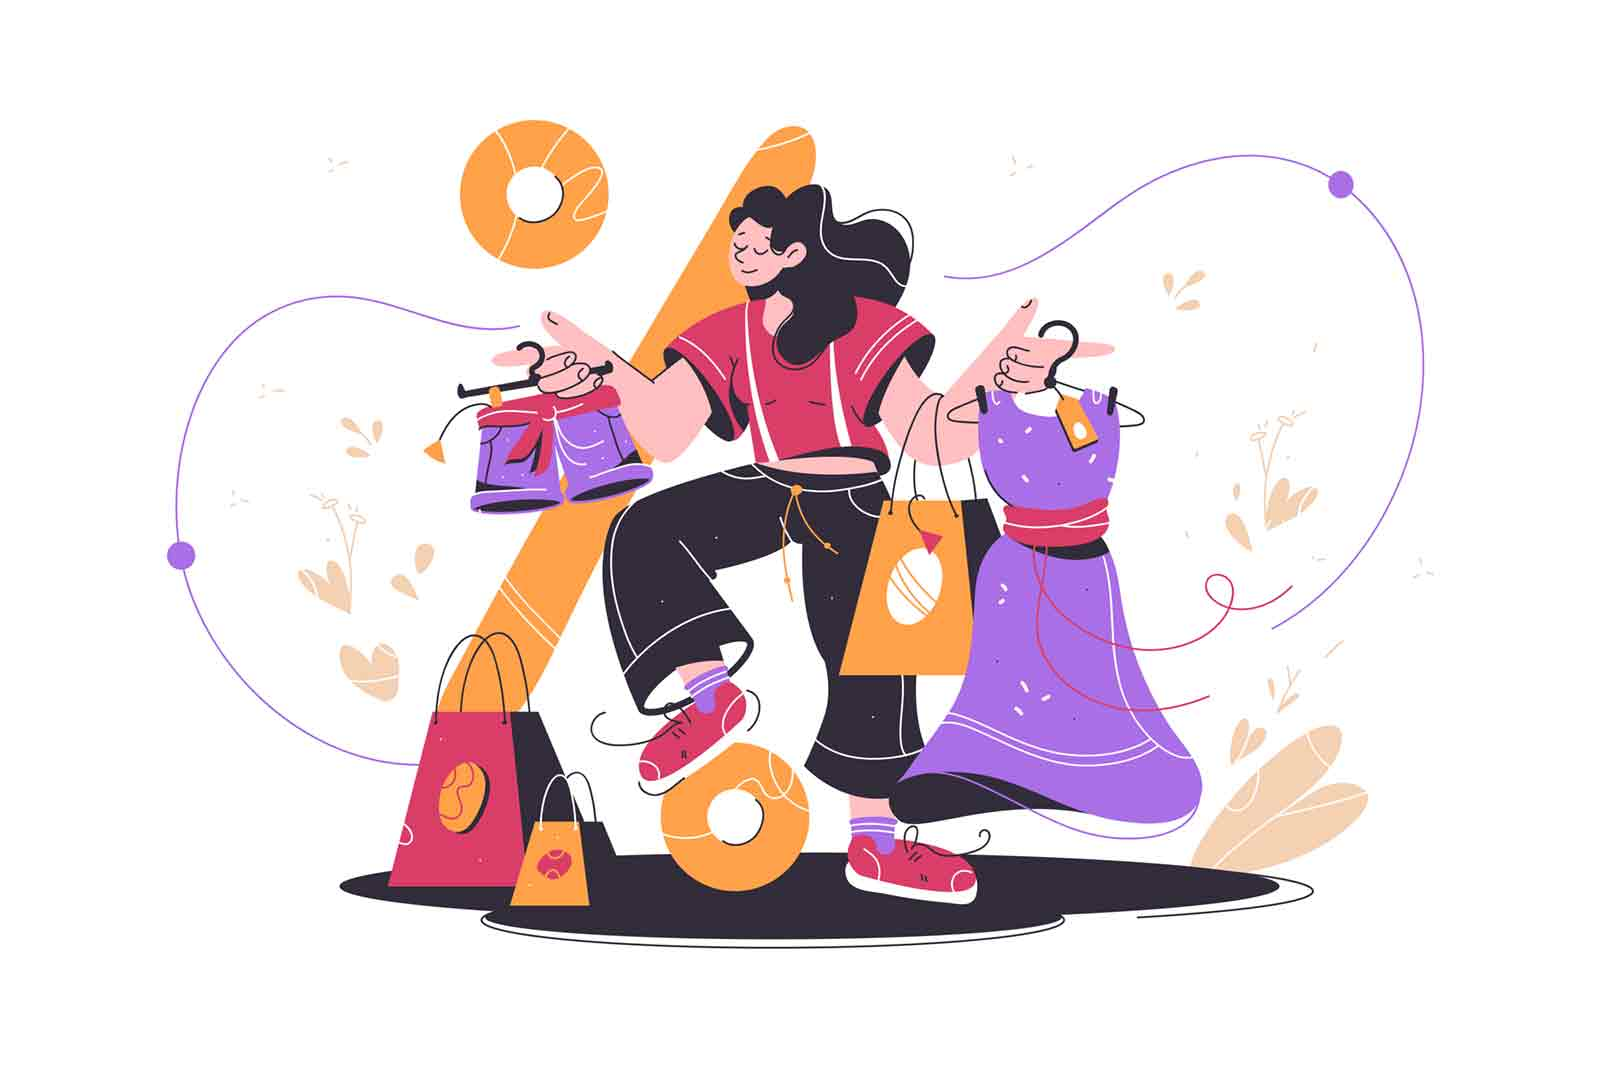 Happy shopping woman buying buying clothes at market. Isolated concept smiling female character after shopping holds packages with stuff and relaxing at shop. Vector illustration.